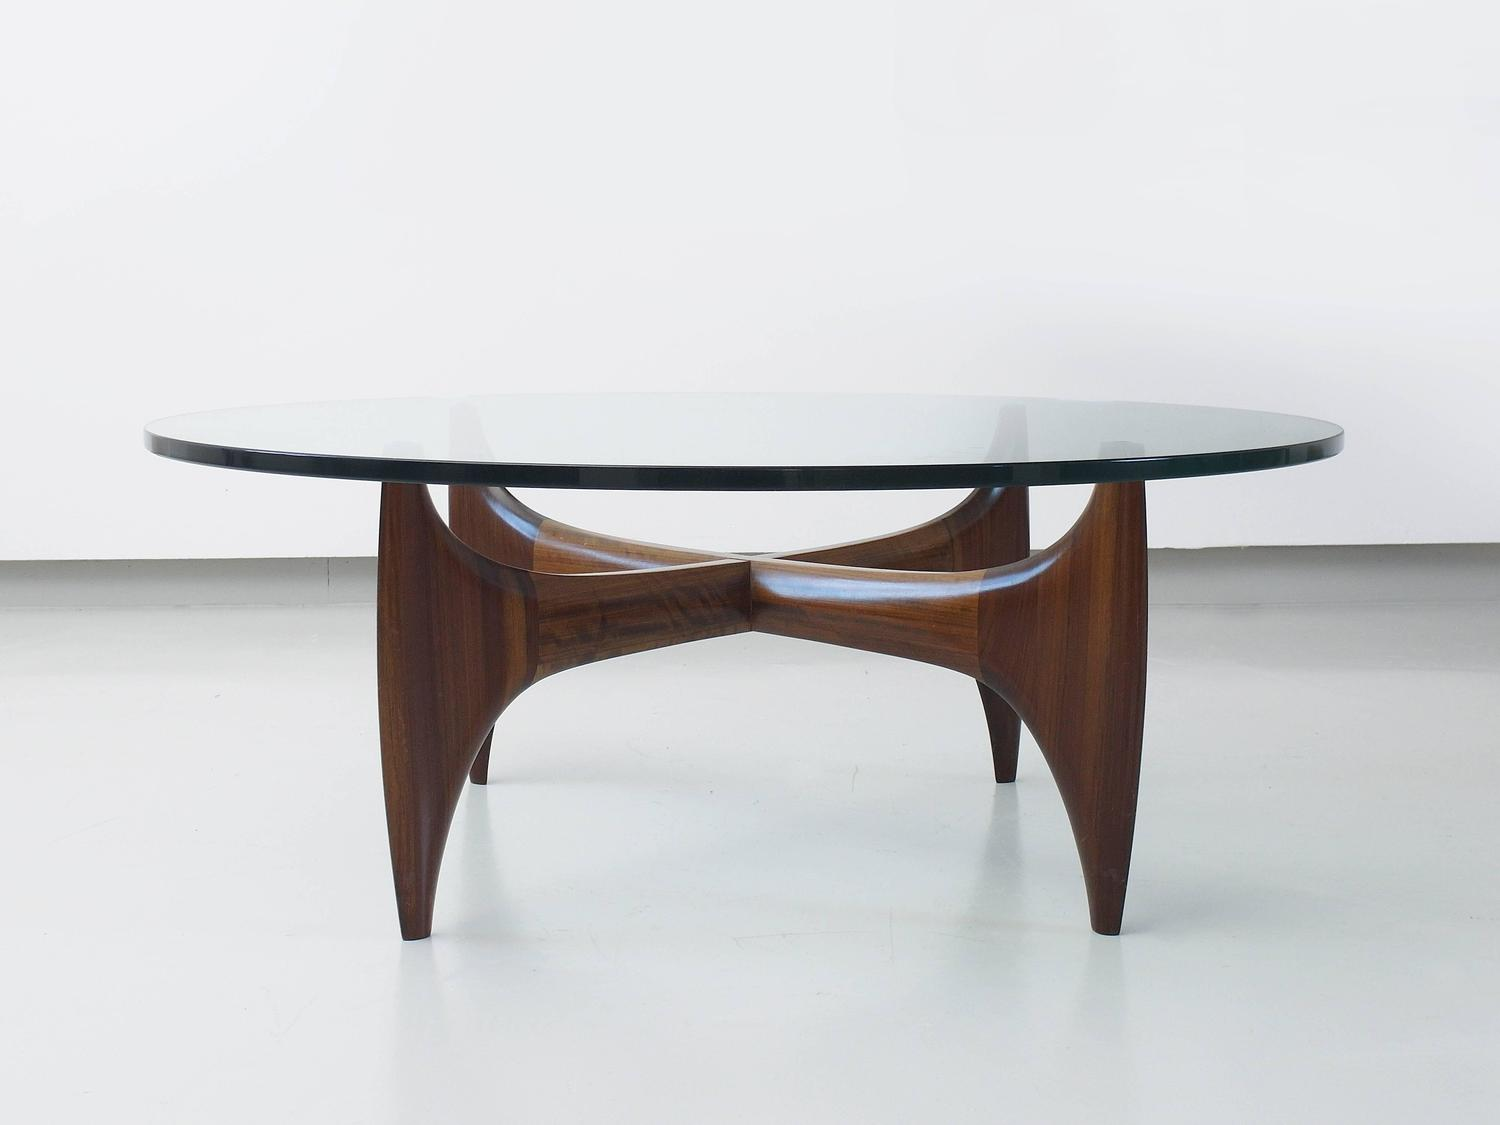 Sculptural Coffee Tables High Quality Brazilian Sculptural Coffee Table In Solid